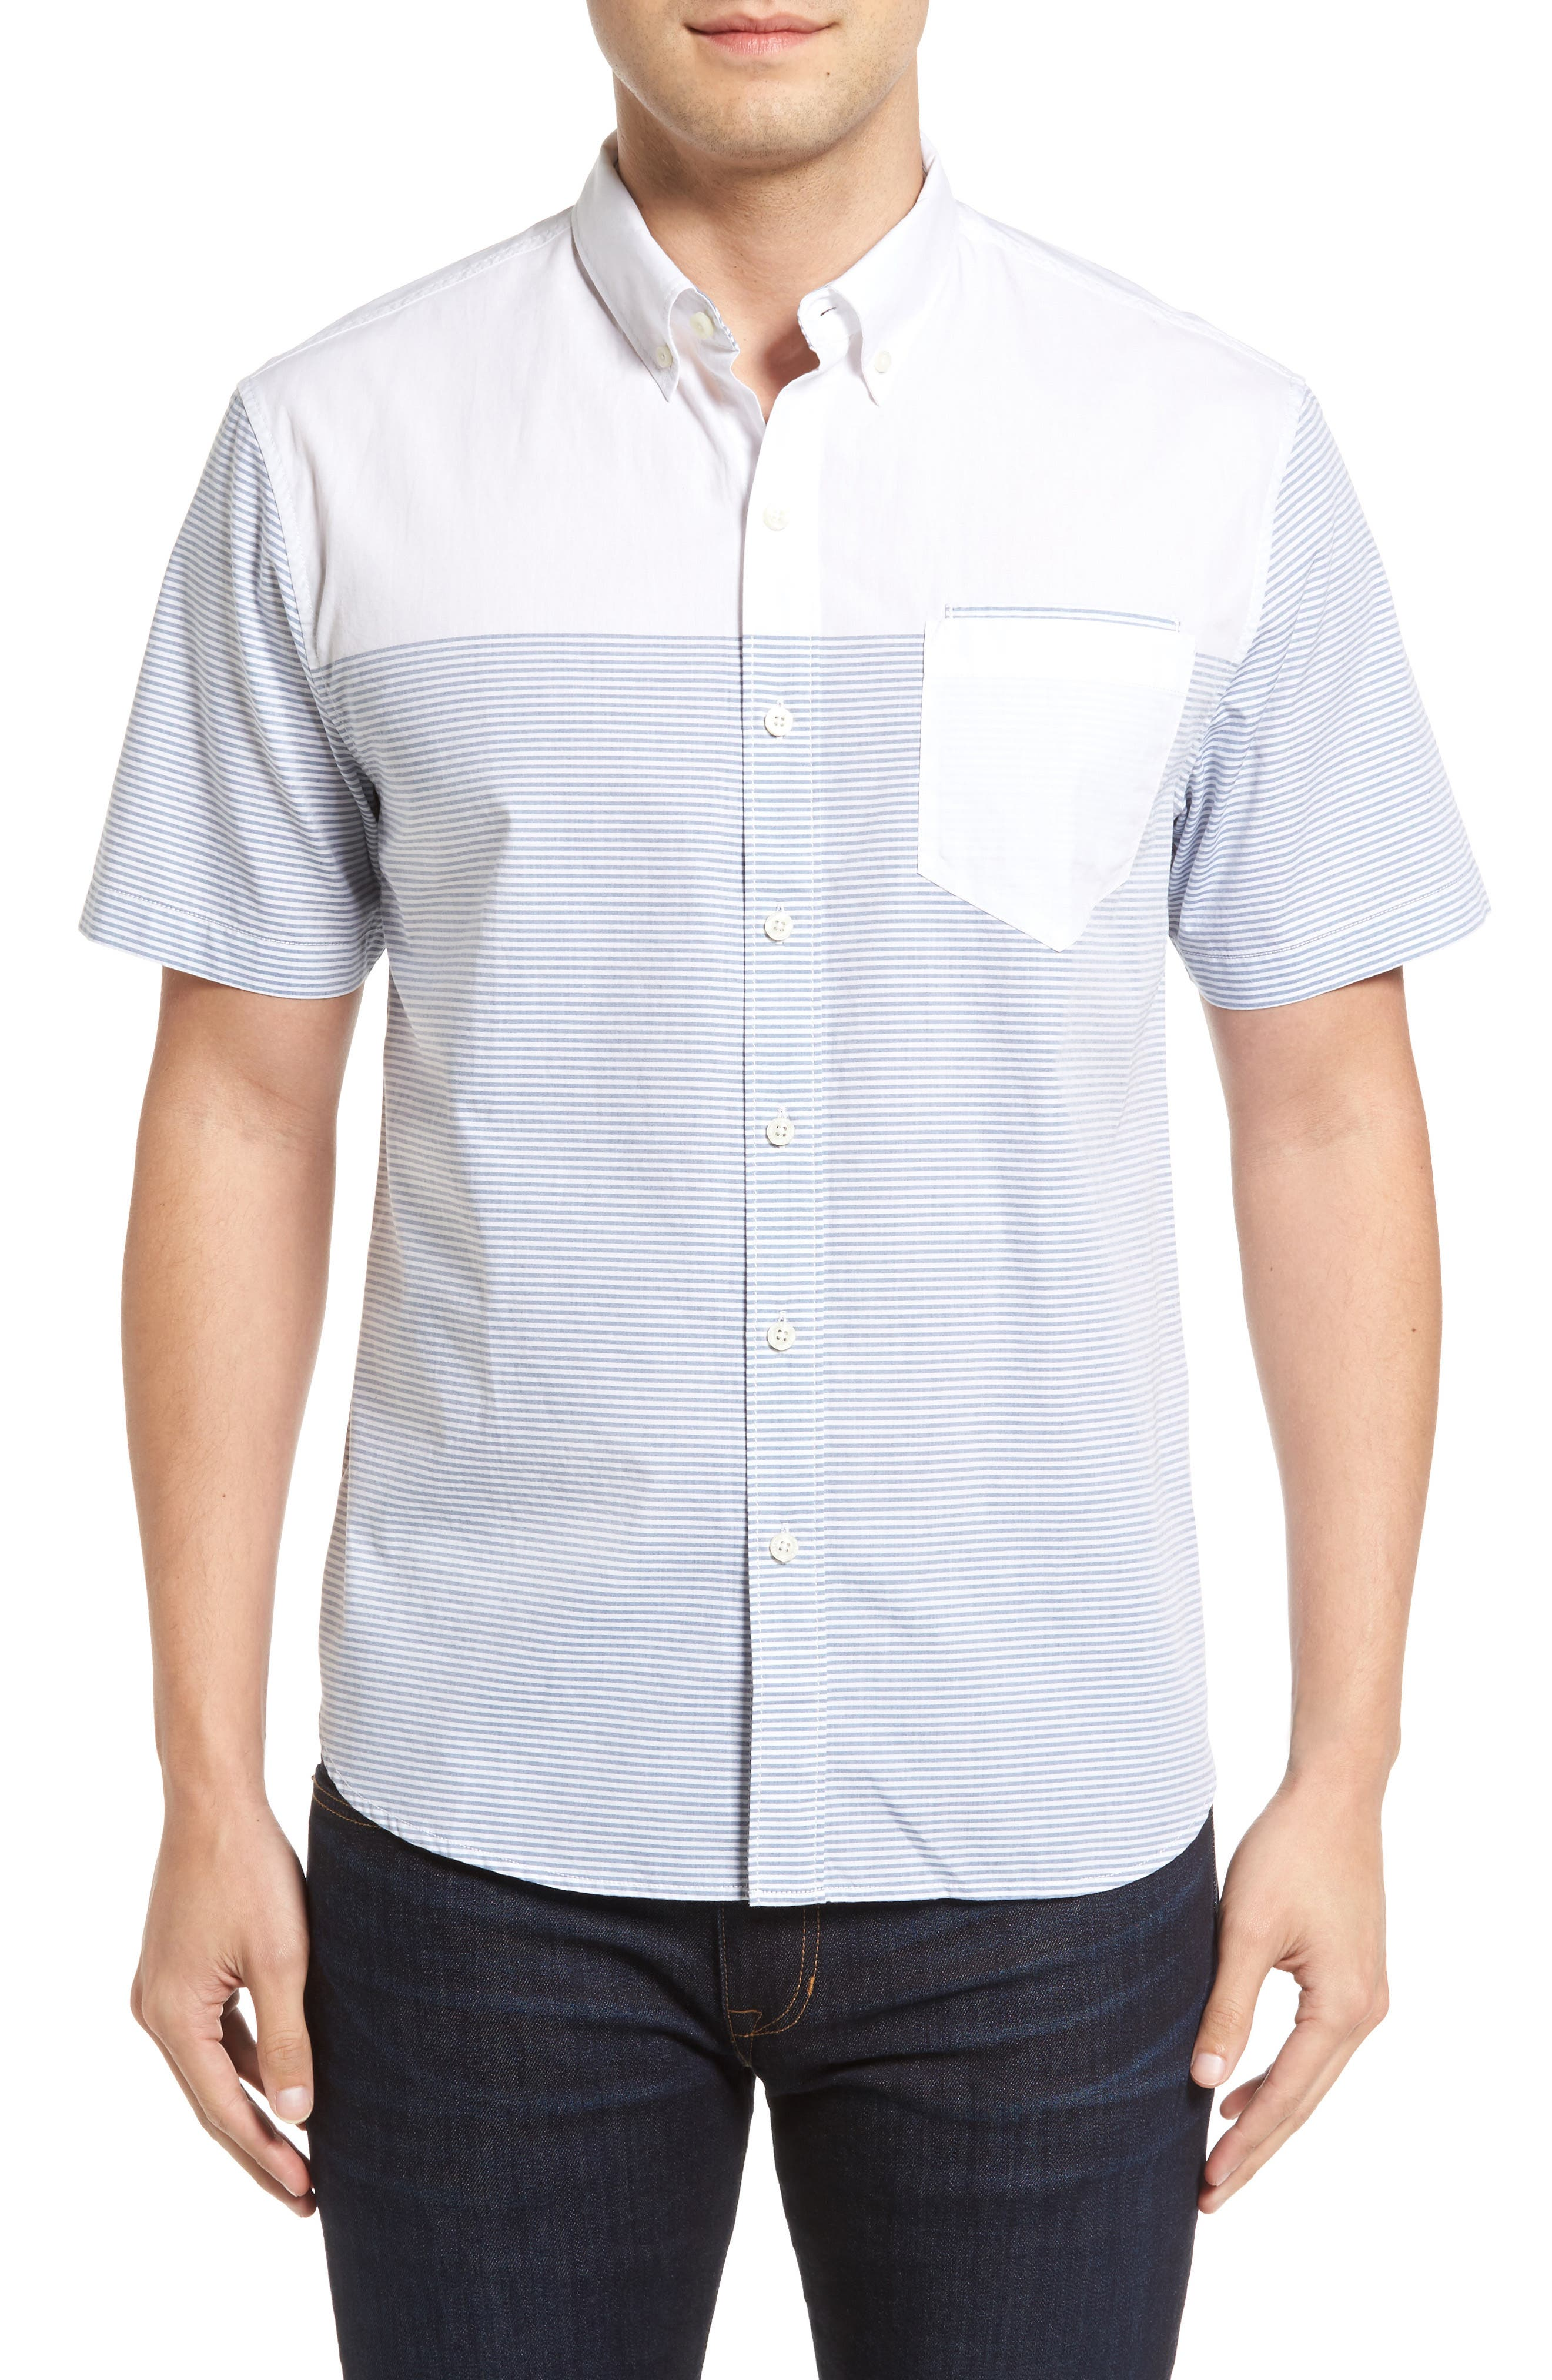 Main Image - Tommy Bahama The Yachtsman Standard Fit Cotton Sport Shirt